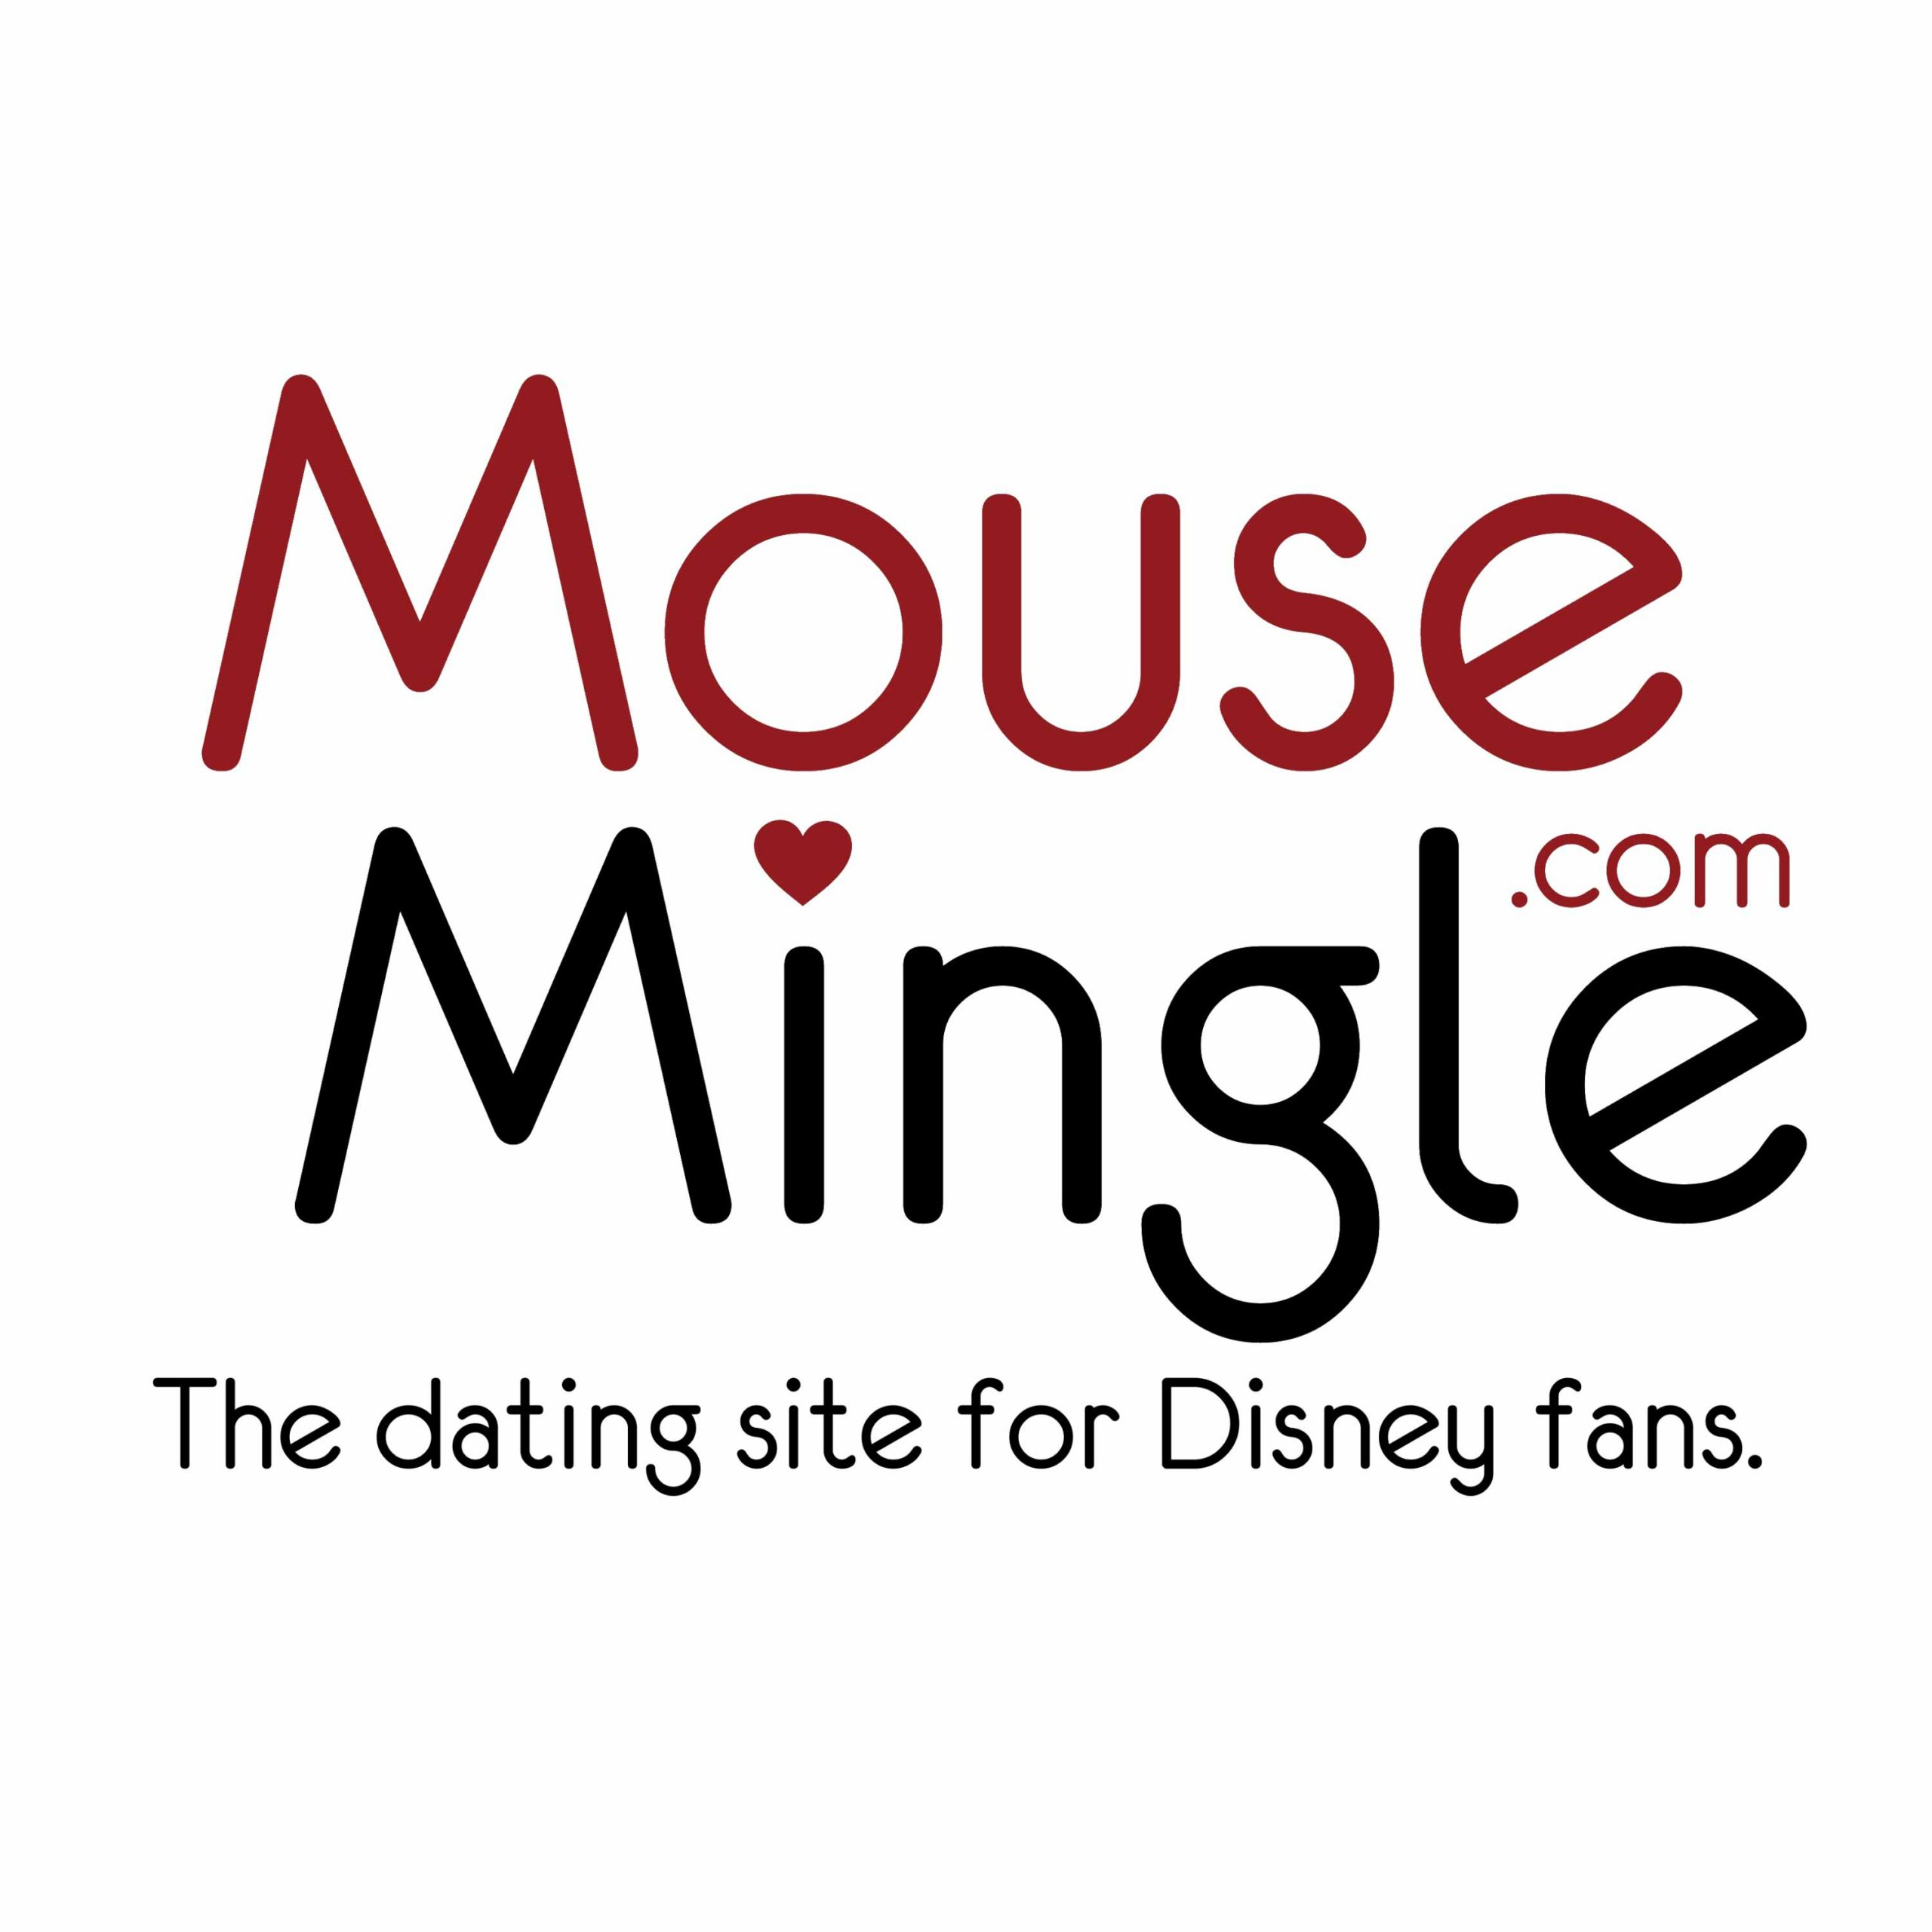 MouseMingle.com - the dating site for Disney, Star Wars, Pixar, and Marvel fans.